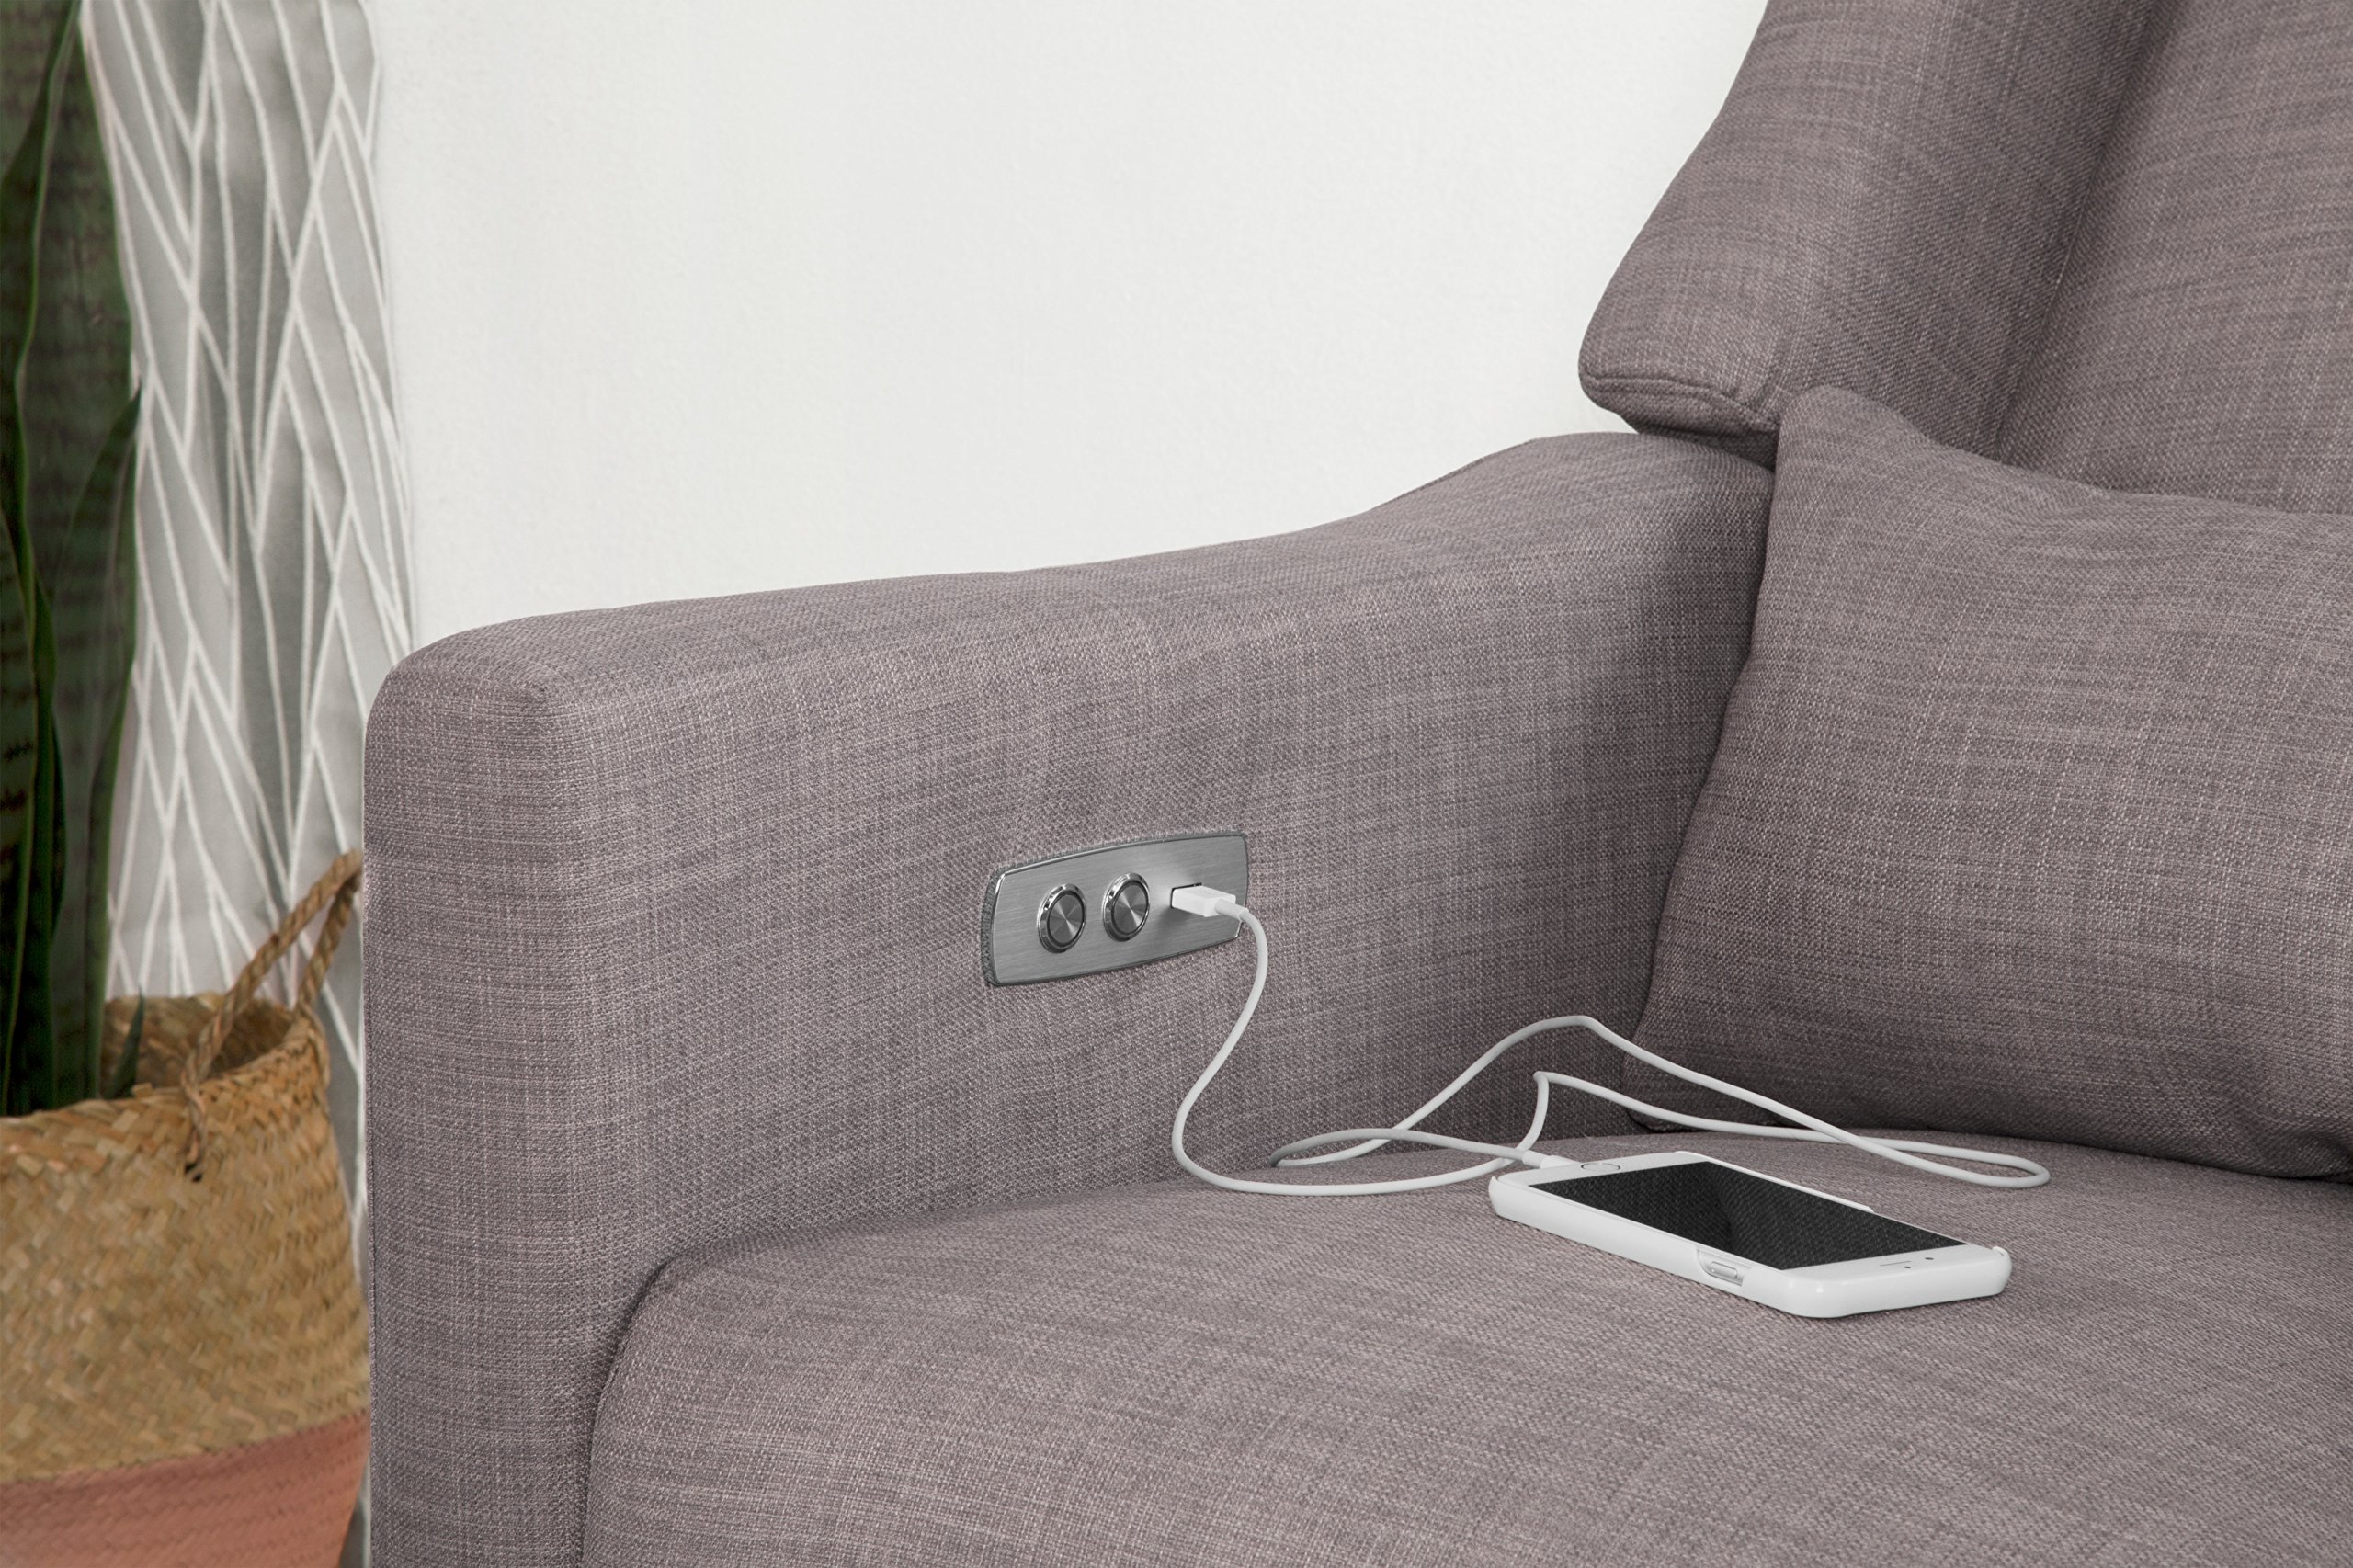 Babyletto Kiwi Electronic Recliner and Swivel Glider with USB Port, Grey Tweed by babyletto (Image #3)